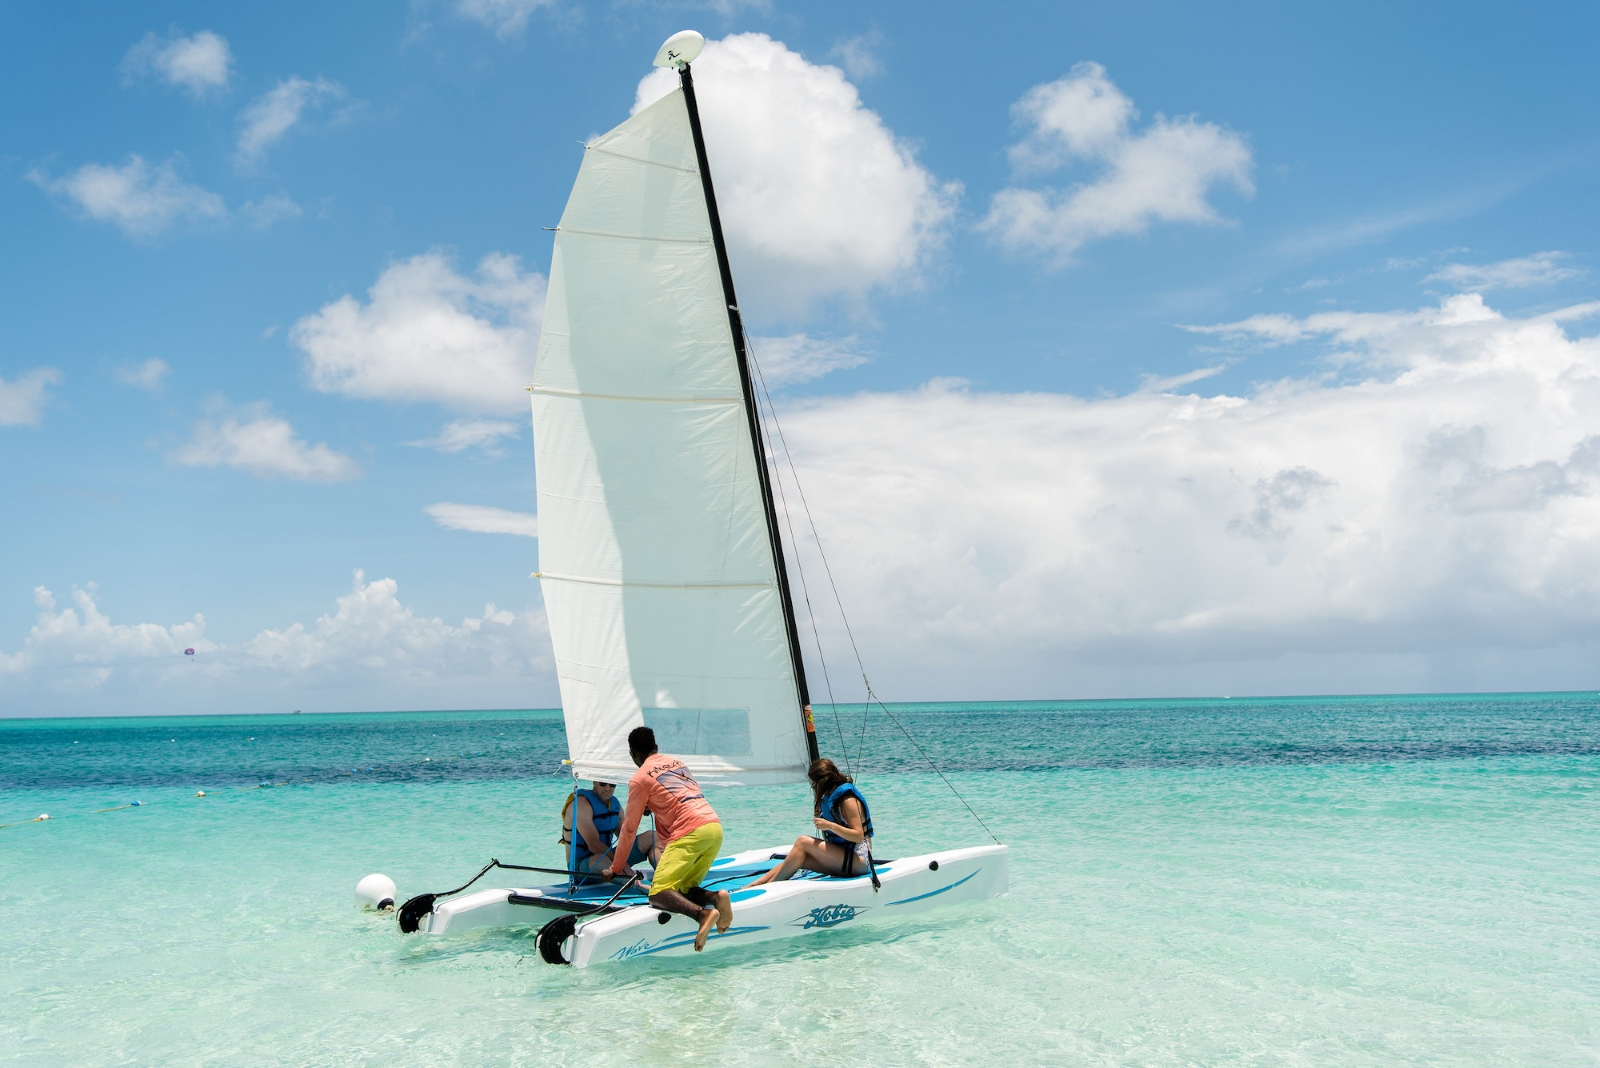 A couple getting ready to take a small sailboat out on clear blue waters with a person parasailing in the background